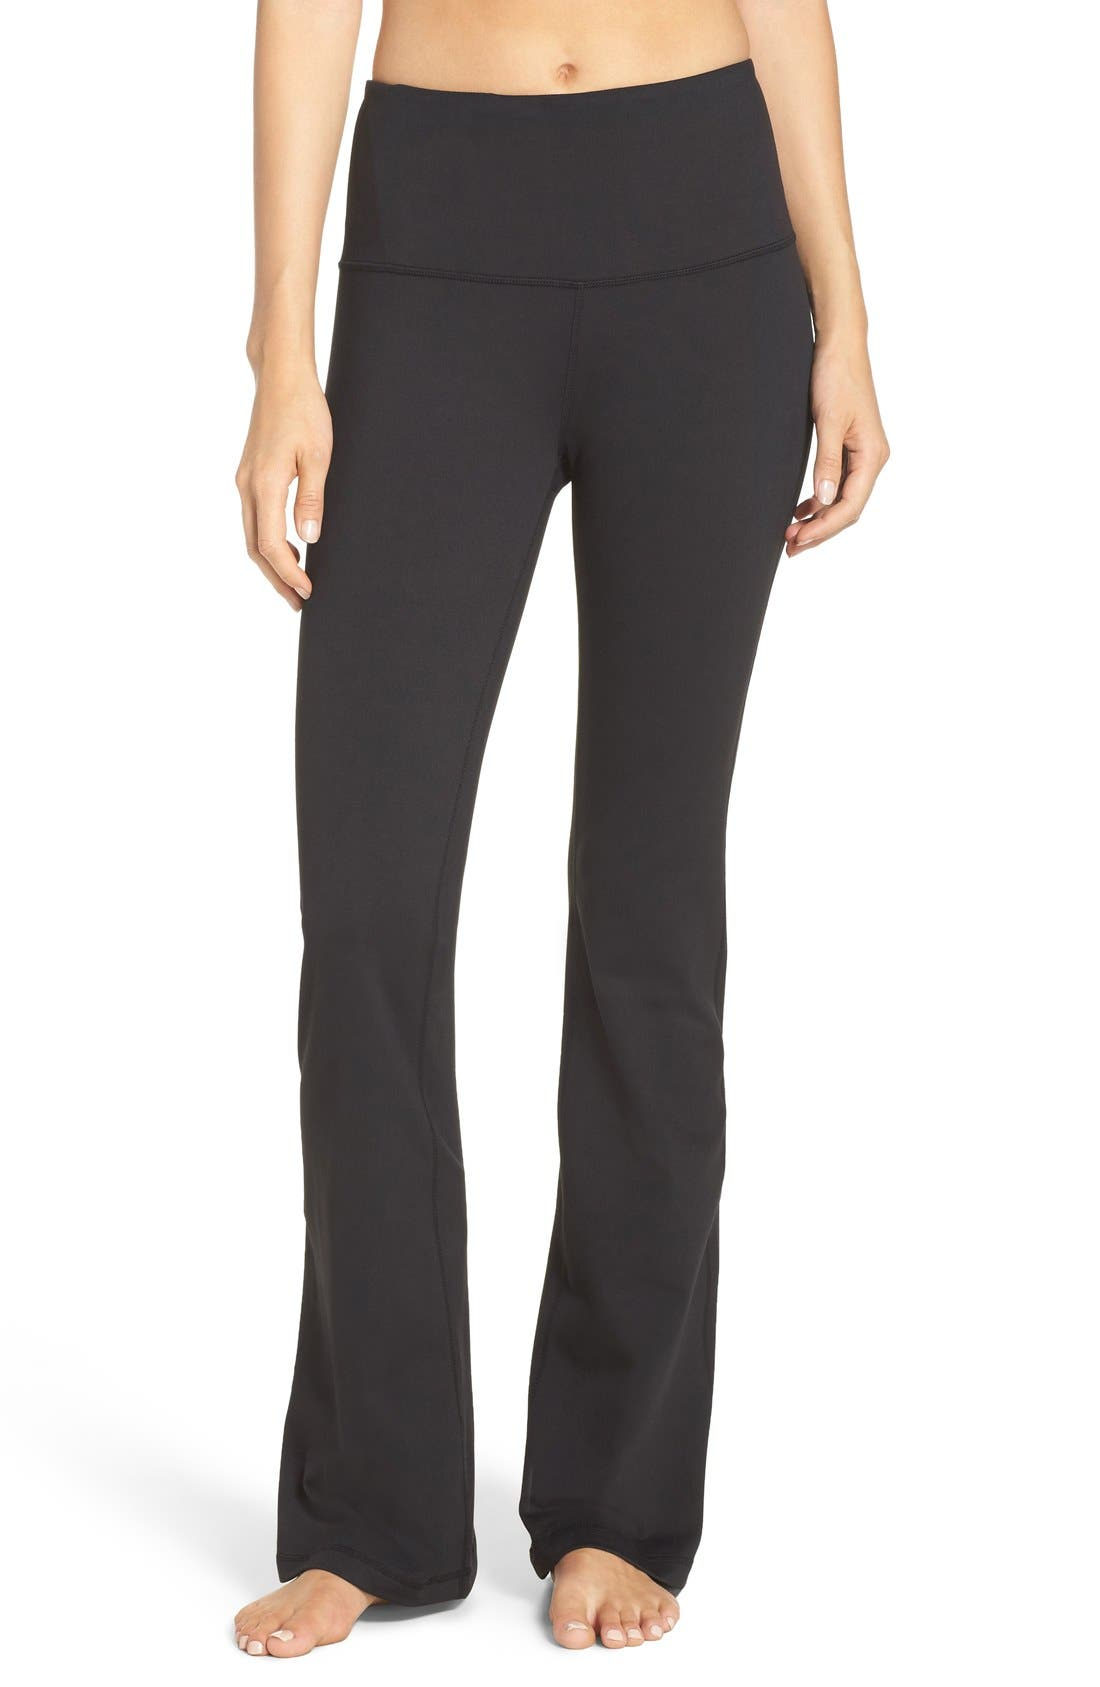 'Barely Flare Booty' High Waist Pants,                         Main,                         color, Black